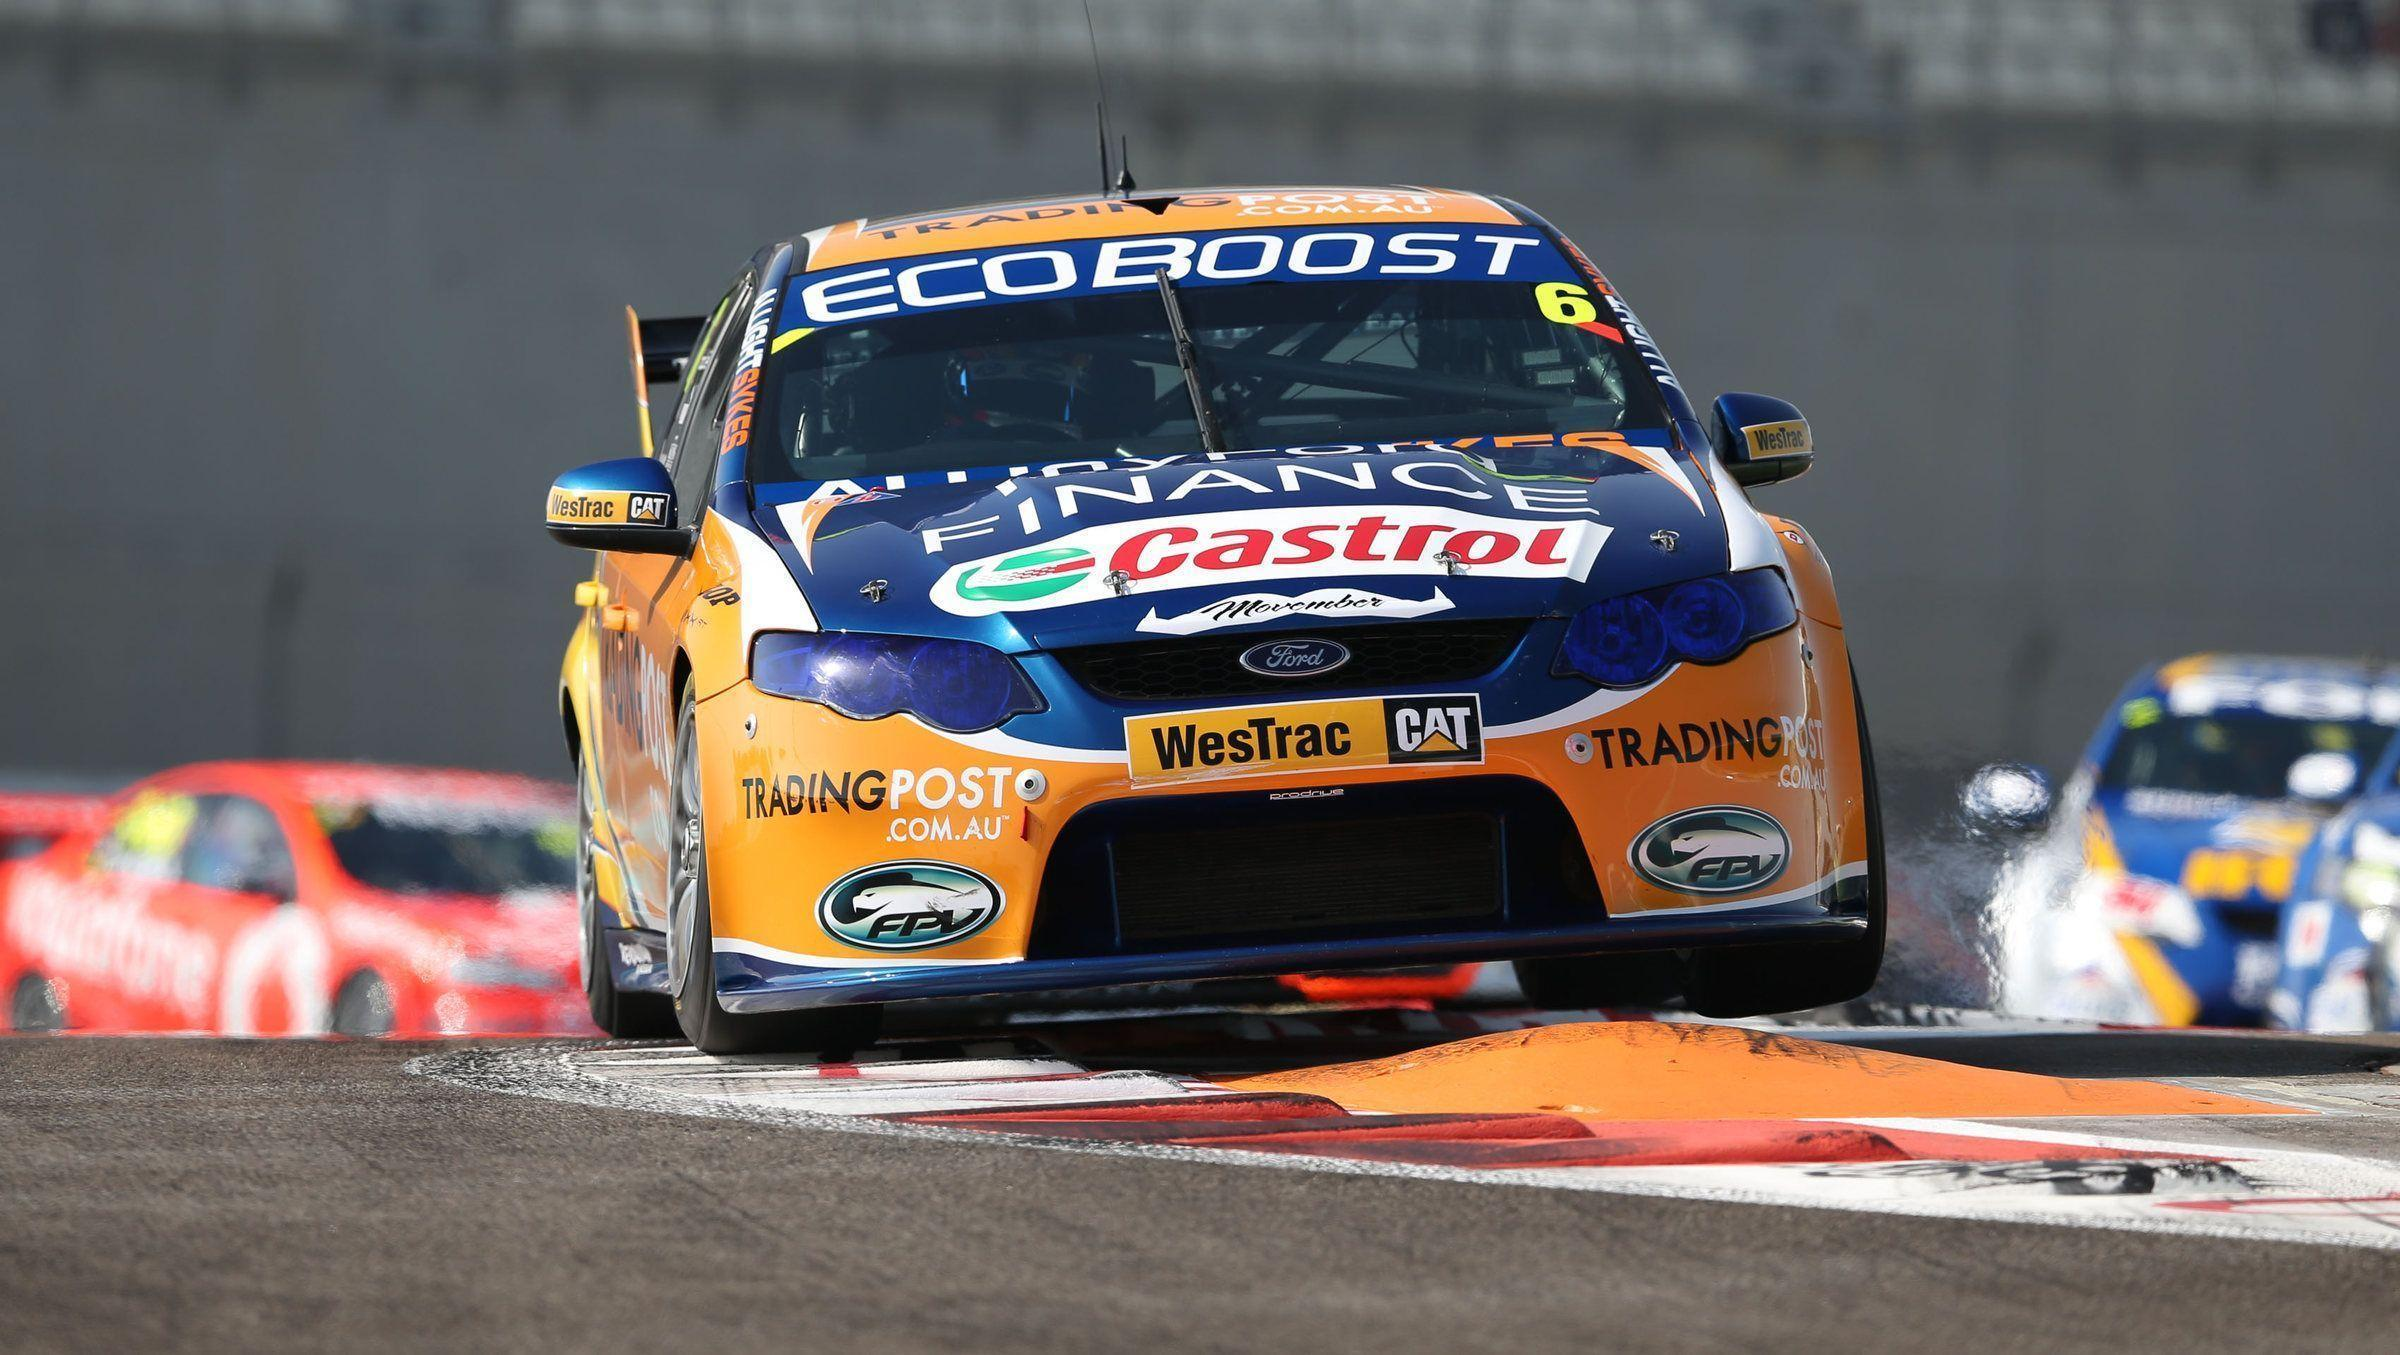 V8 Supercars Wallpapers 2400x1355